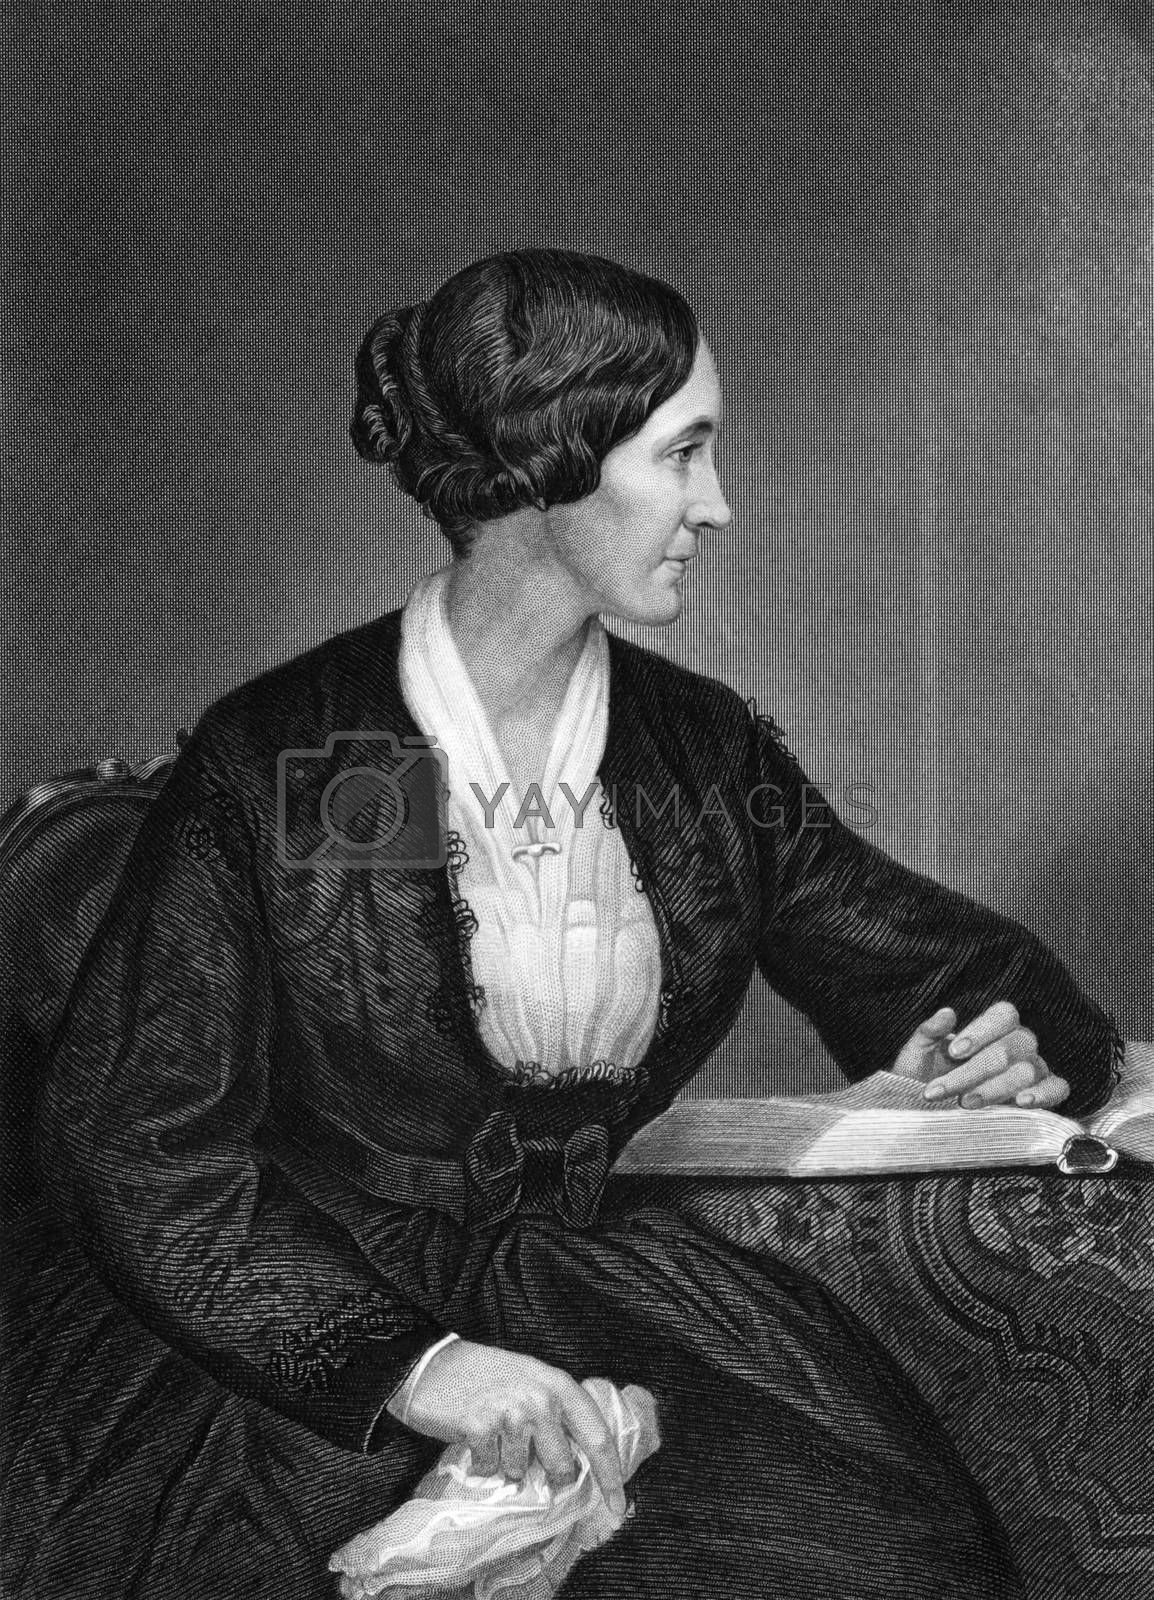 Alice Cary (1820-1871) on engraving from 1873.  American poet. Engraved by unknown artist and published in ''Portrait Gallery of Eminent Men and Women with Biographies'',USA,1873.